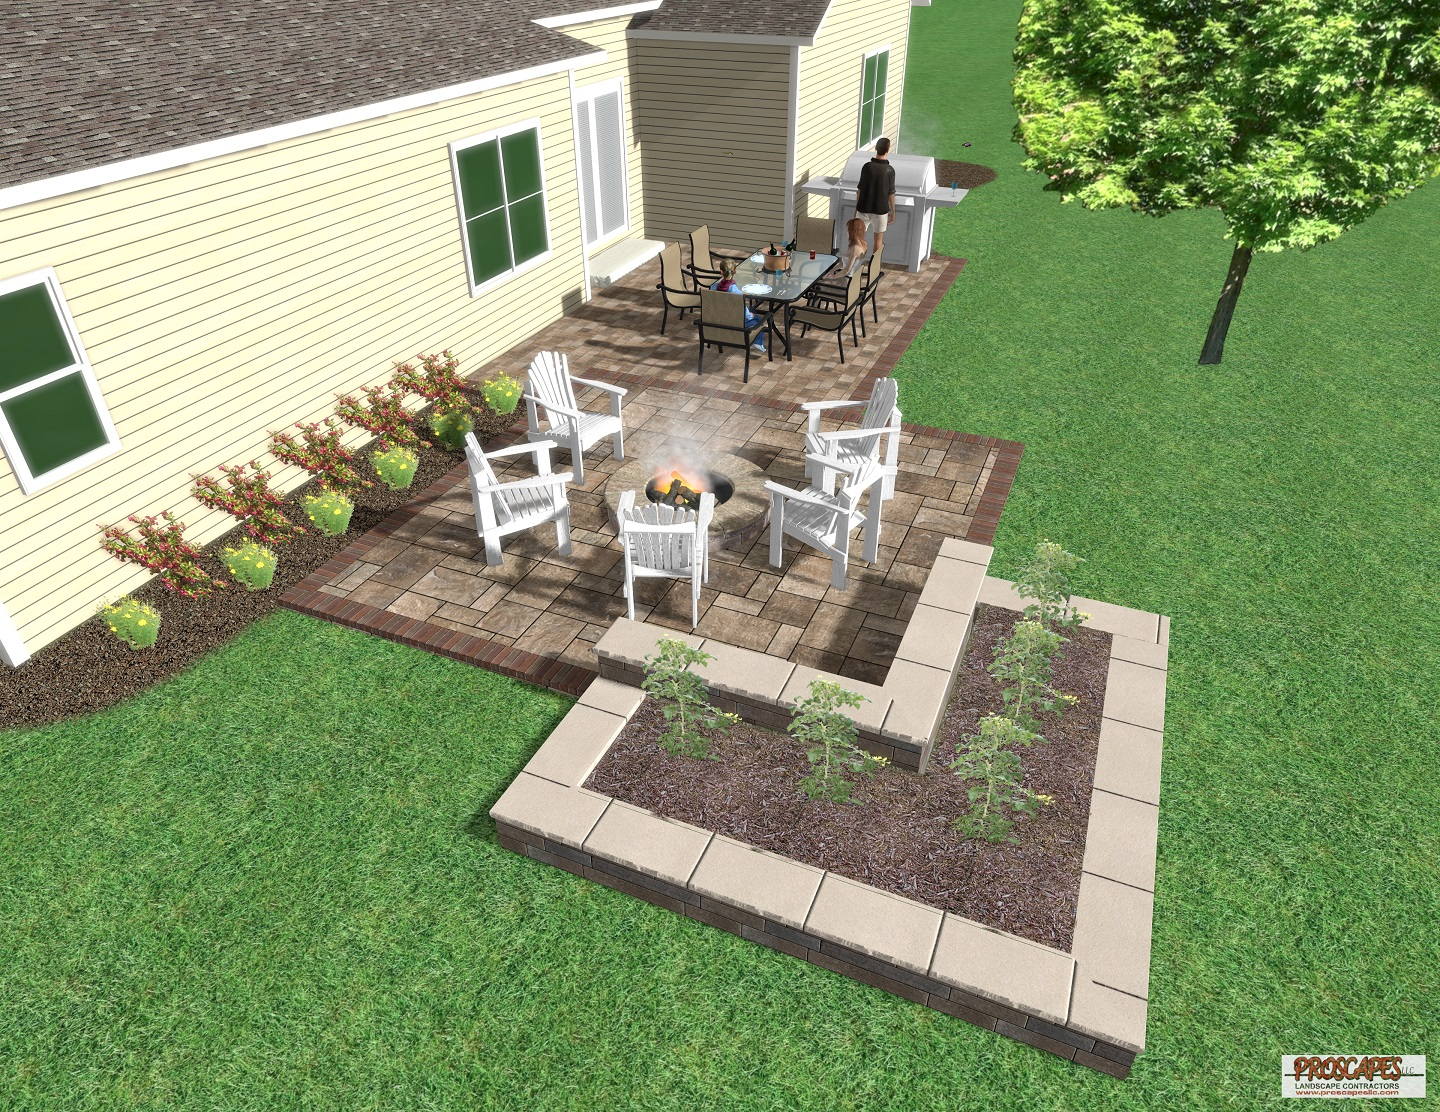 Approximate price: $30,000 - This sophisticated paver patio features two distinct outdoor rooms: a spacious cooking/dining area and a relaxing fire pit area. The patio blends beautifully into its surroundings with a raised bed of greenery and a raised planter that doubles as a seat on the patio side.